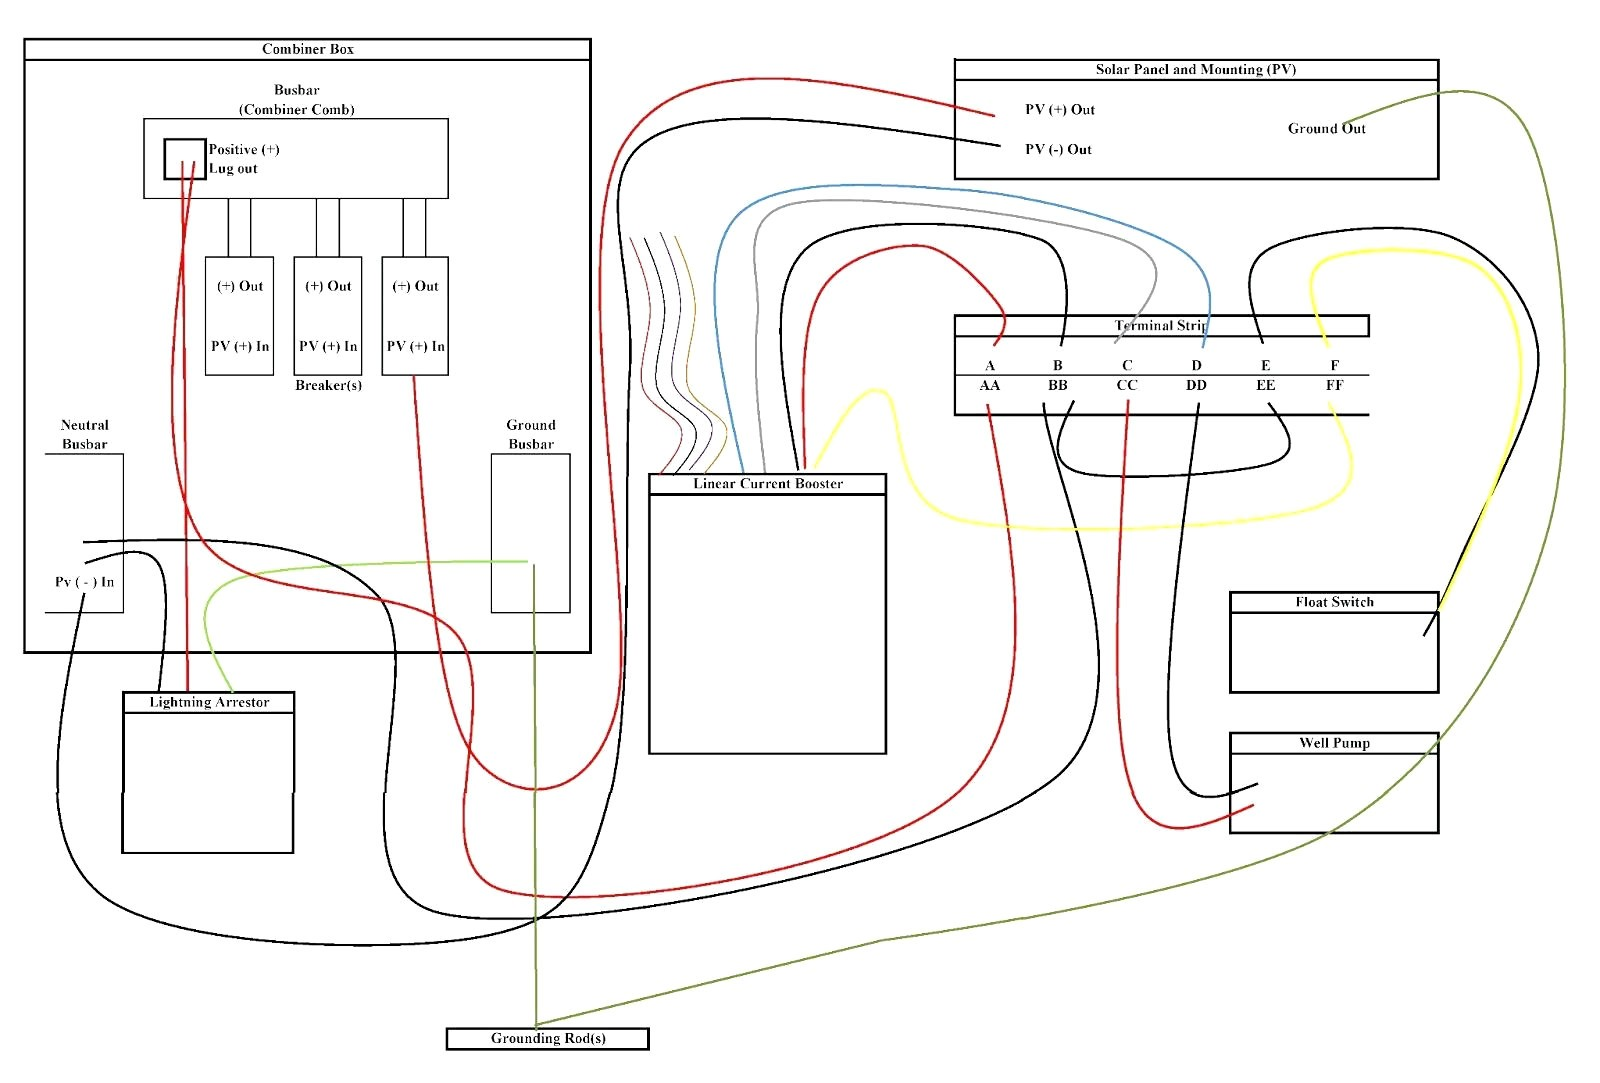 Solar Biner Box Wiring Diagram Trusted Diagrams Circuit Unique Combiner Image Power Schematic Full Size Of